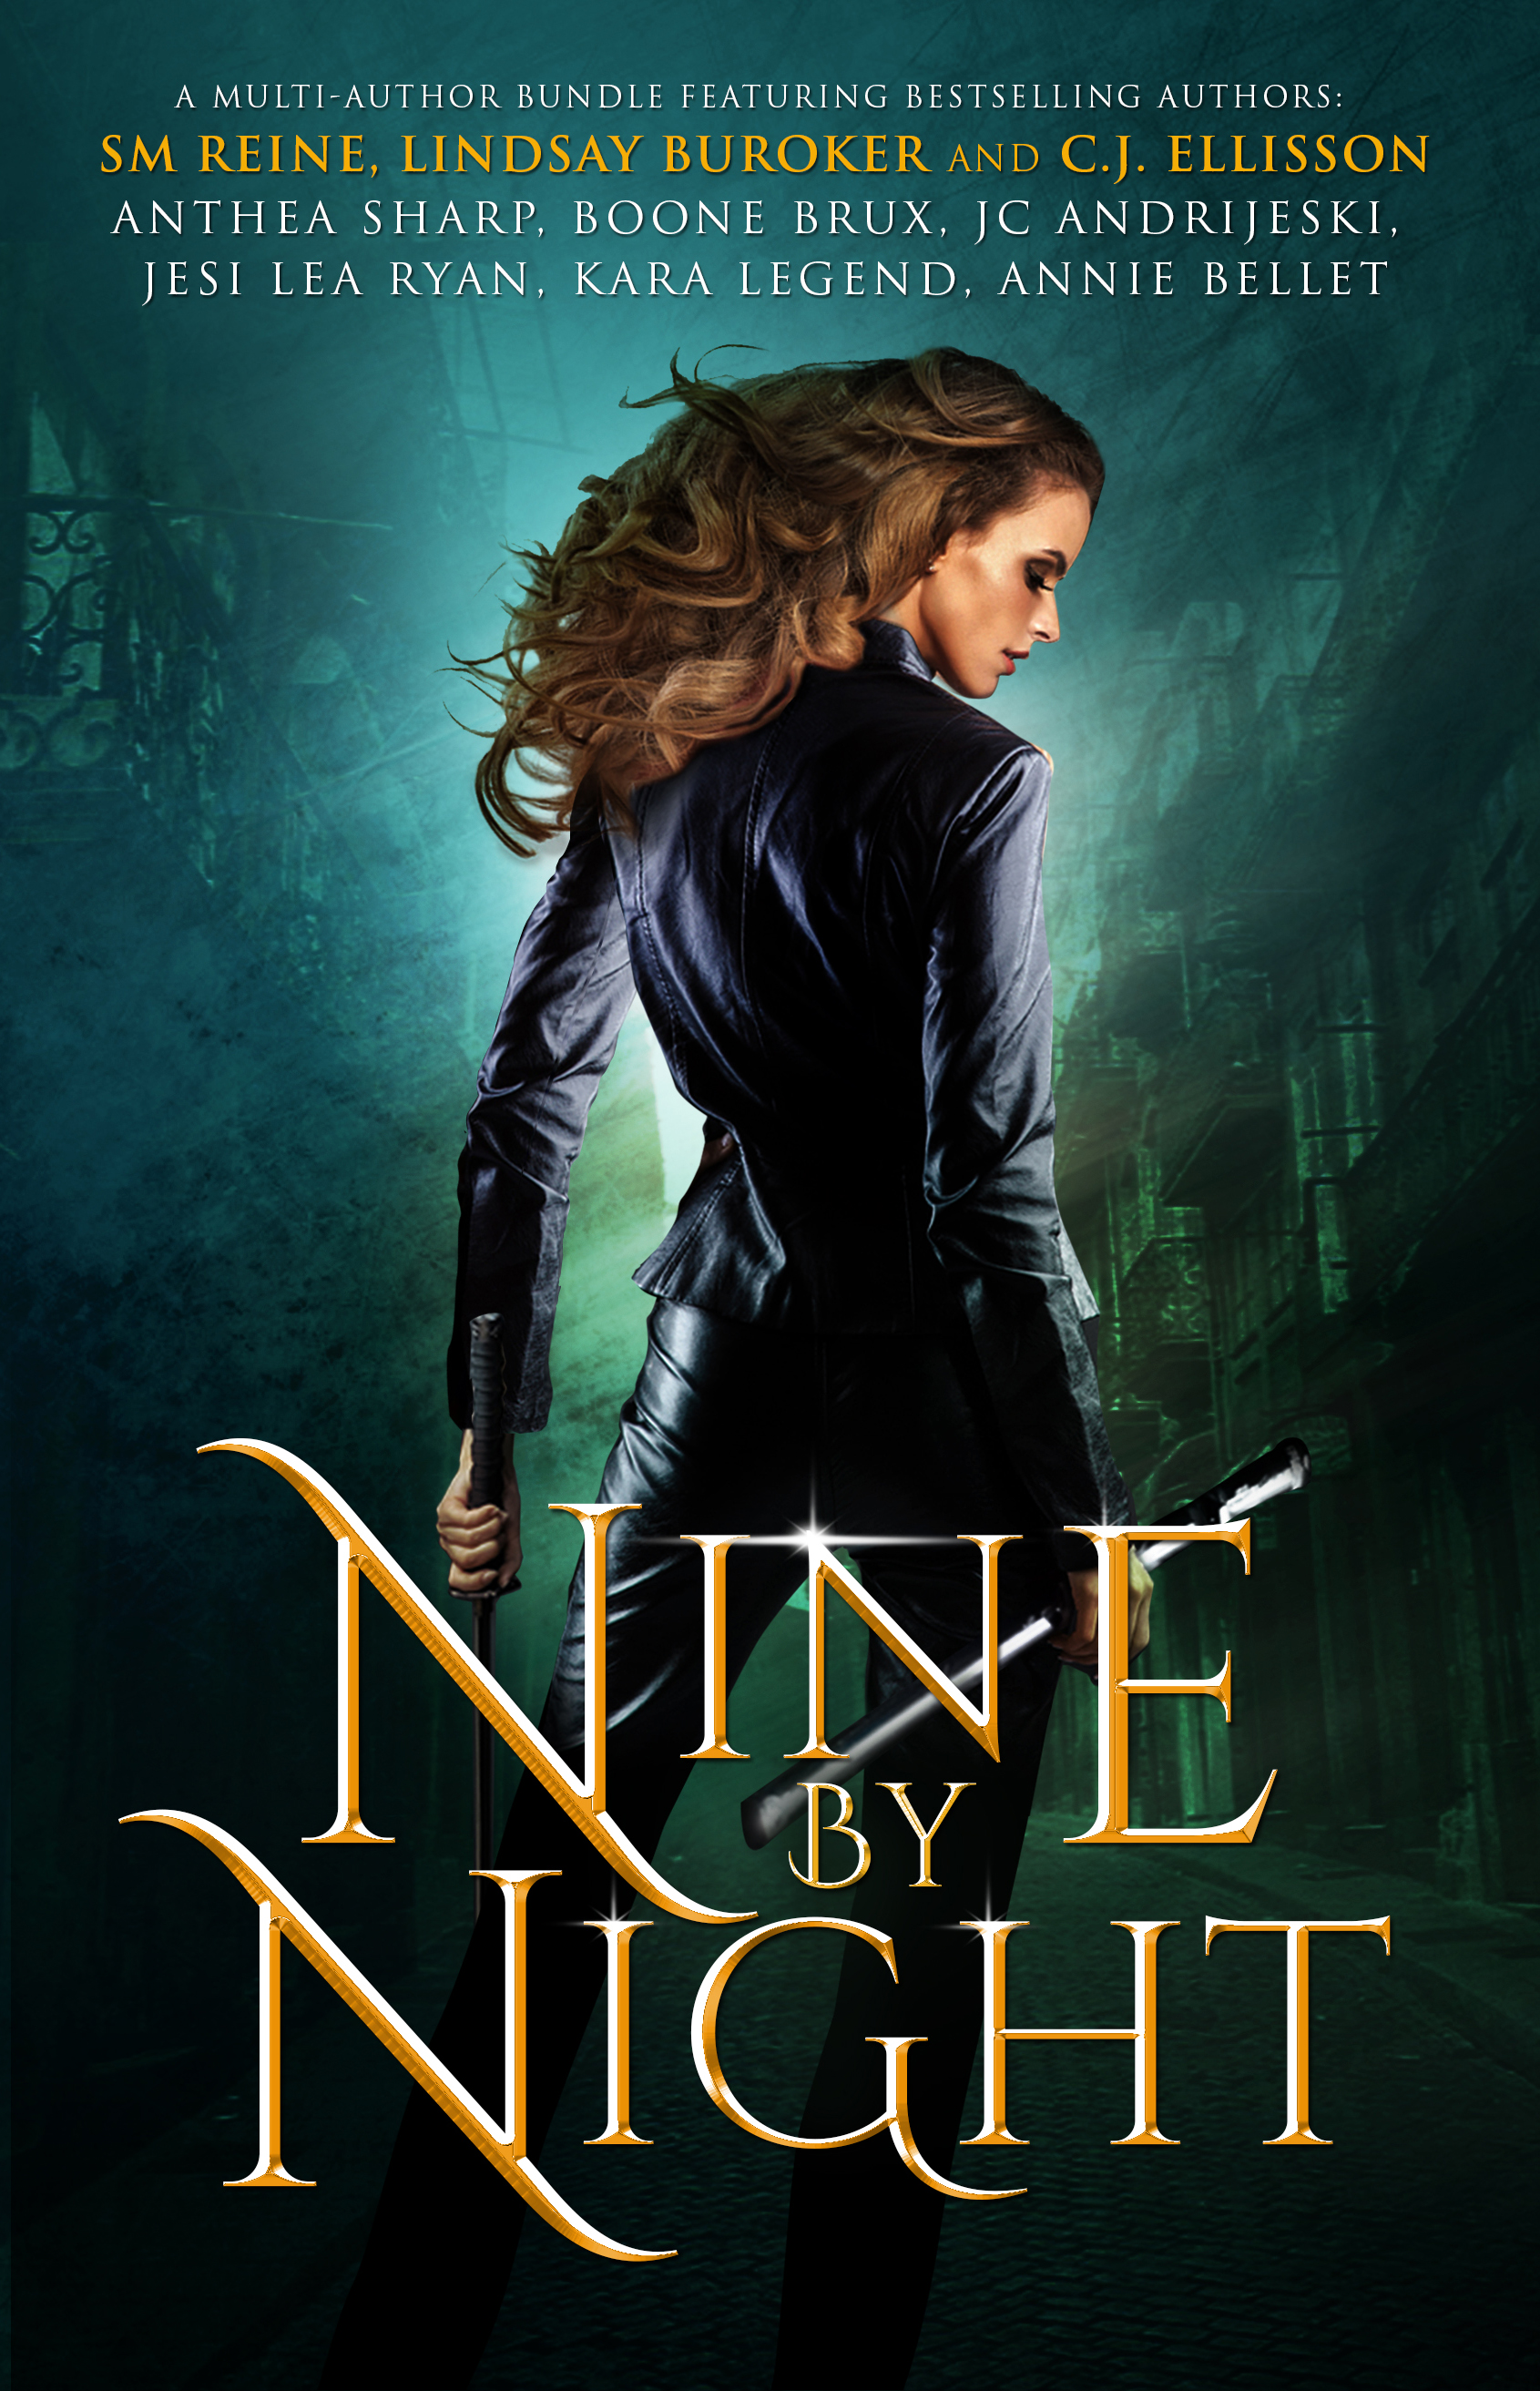 Urban Book Cover Ideas ~ Create a kick butt urban fantasy cover inspired by the tv